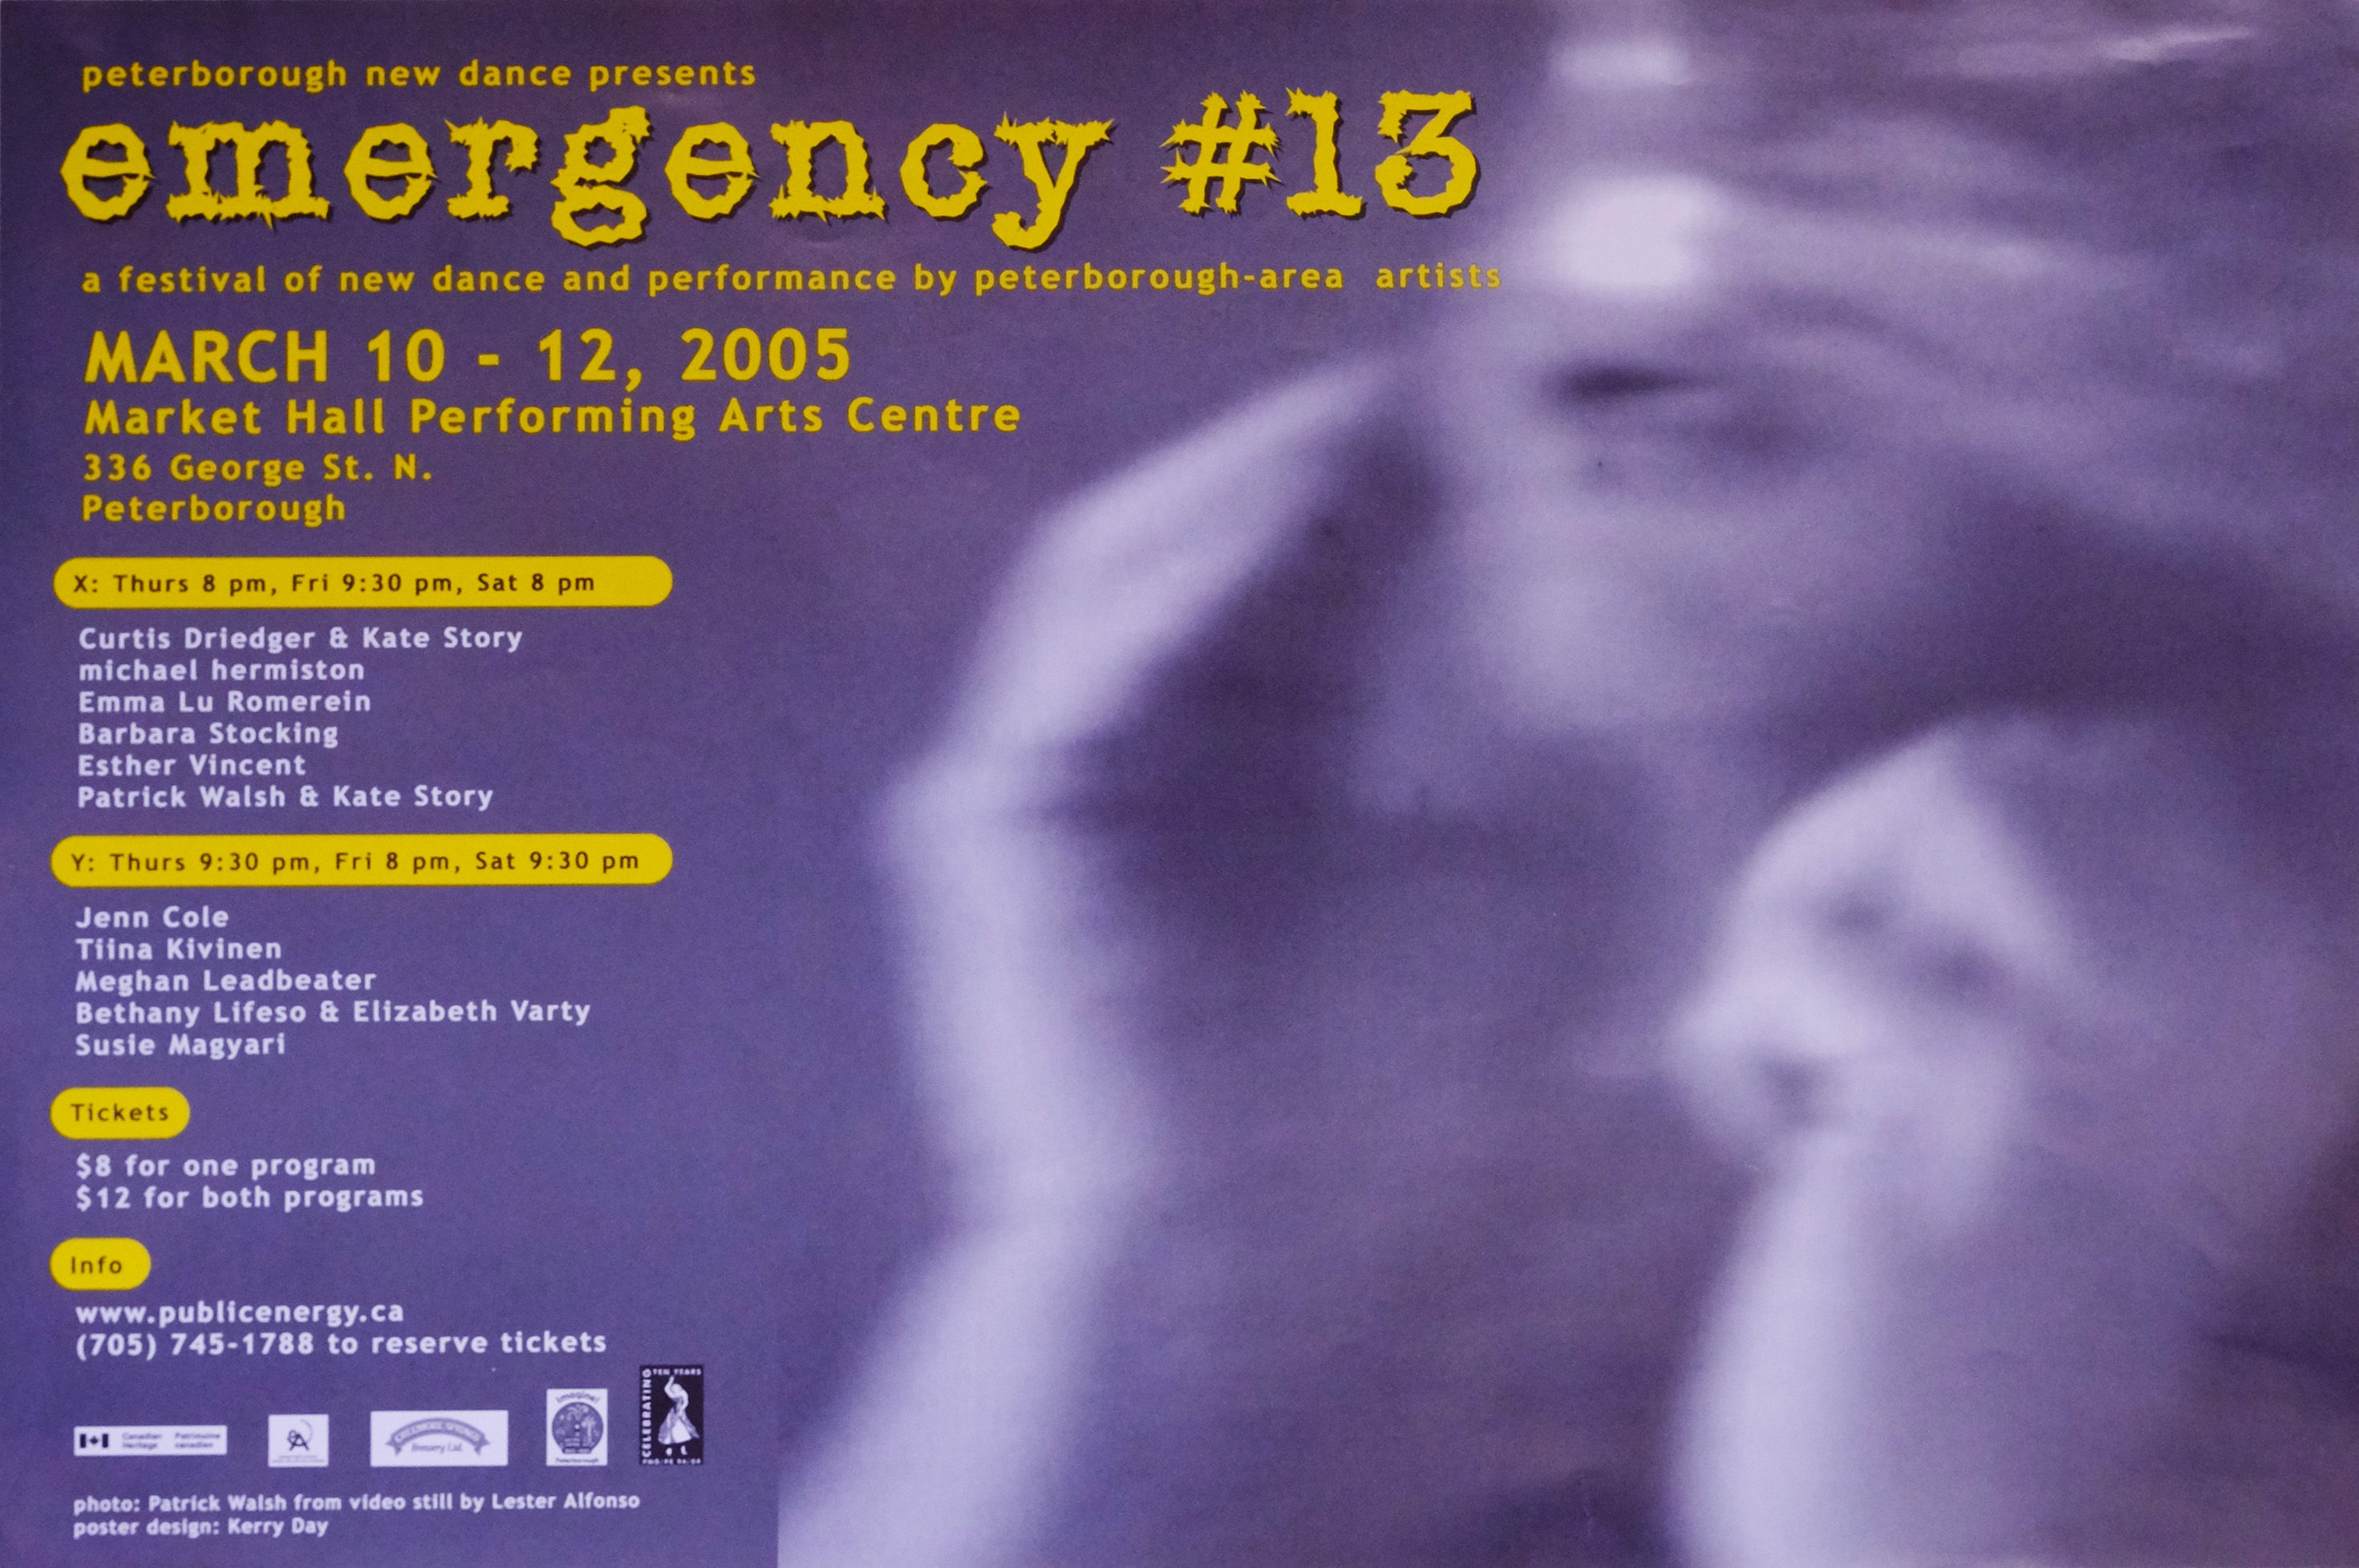 Emergency #13  in the photo.